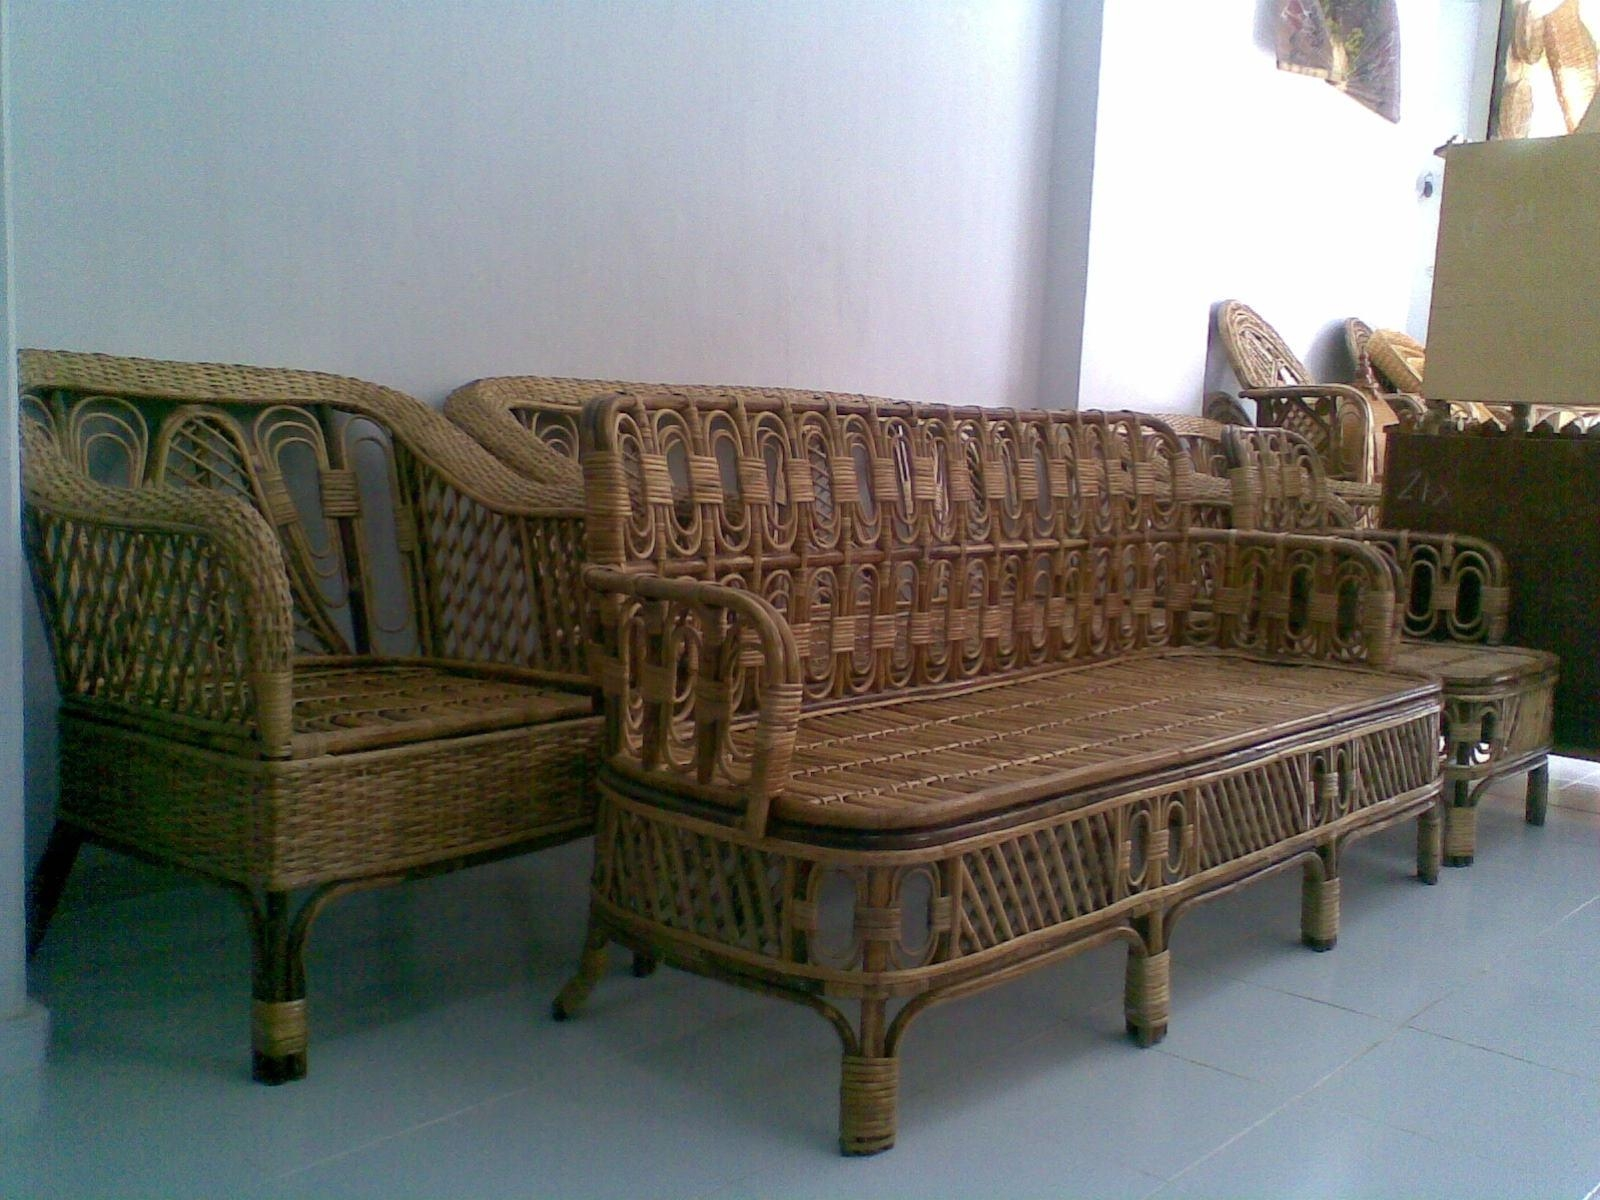 Bamboo Sofa Set With Design Gallery 21235 | Kengire For Ken Sofa Sets (Image 2 of 20)